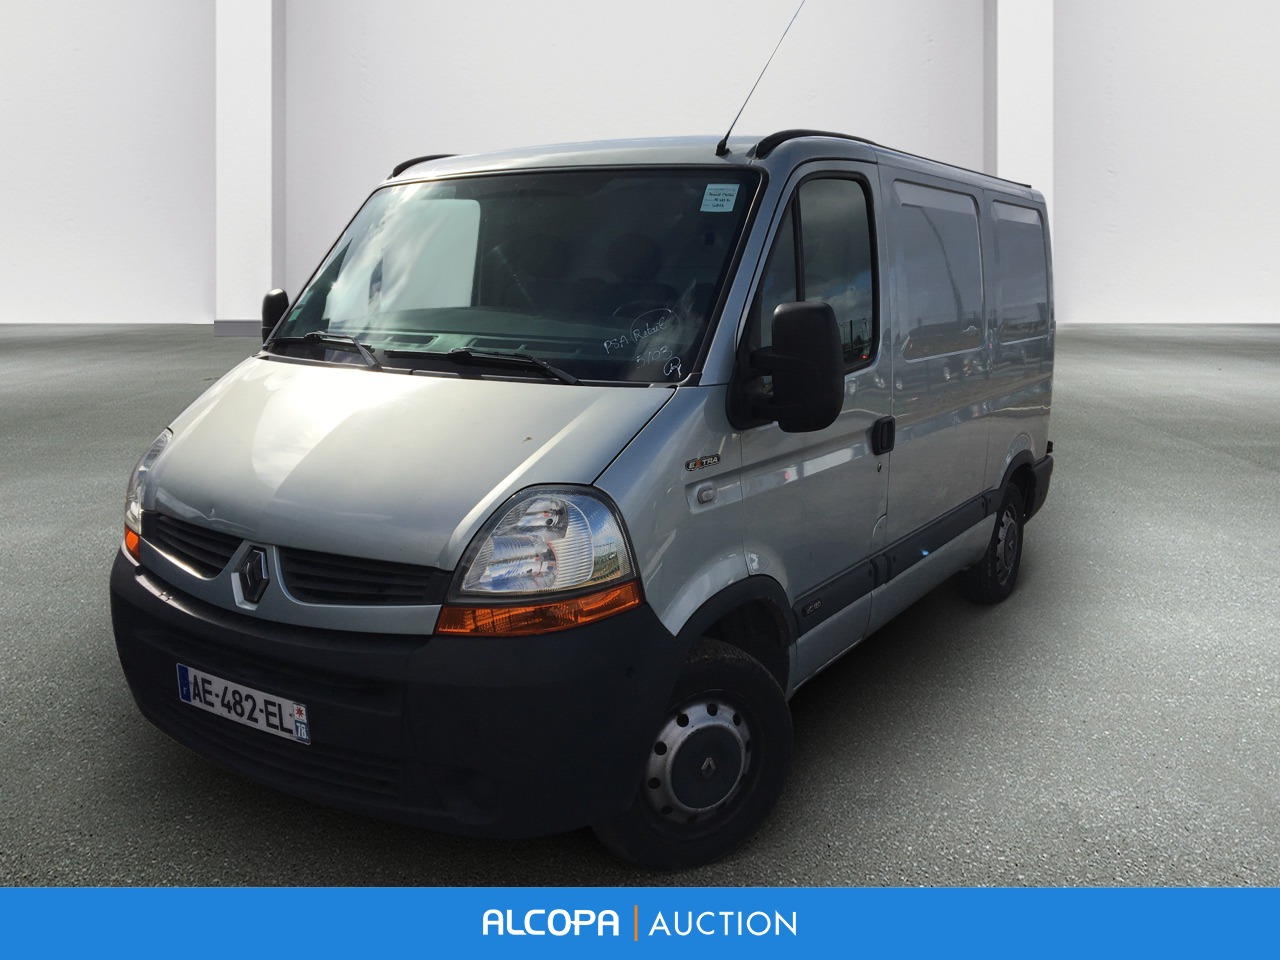 renault master fourgon master fgn l1h1 2 8t 2 5 dci 120 e4 extra beauvais alcopa auction. Black Bedroom Furniture Sets. Home Design Ideas